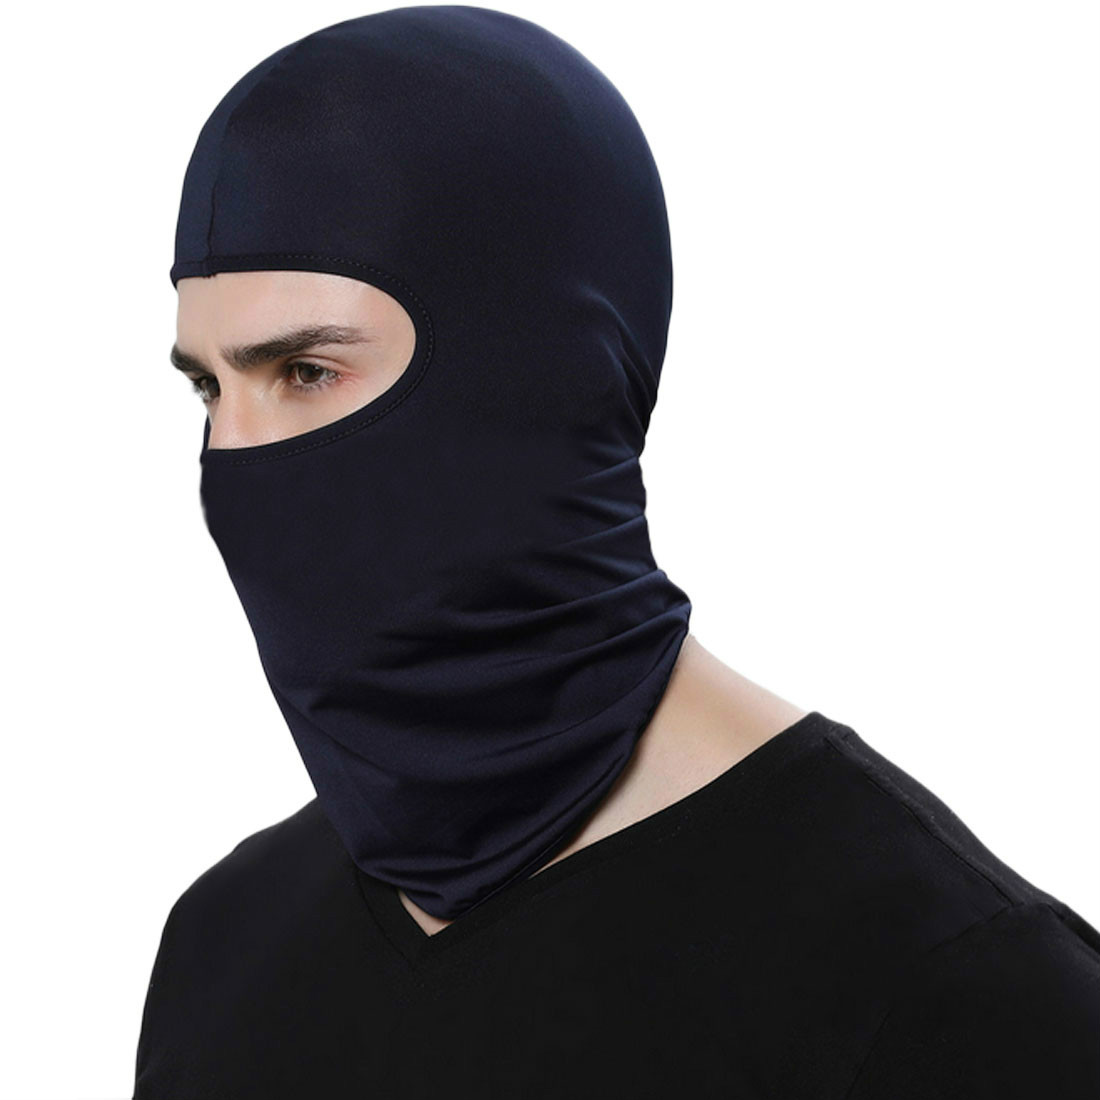 2018 Hot Selling Cycling Face Mask Ski Neck Protecting Outdoor Balaclava Full Face Mask Ultra Thin Breathable Windproof лакомство для грызунов чика био шиповник с календулой 110 г